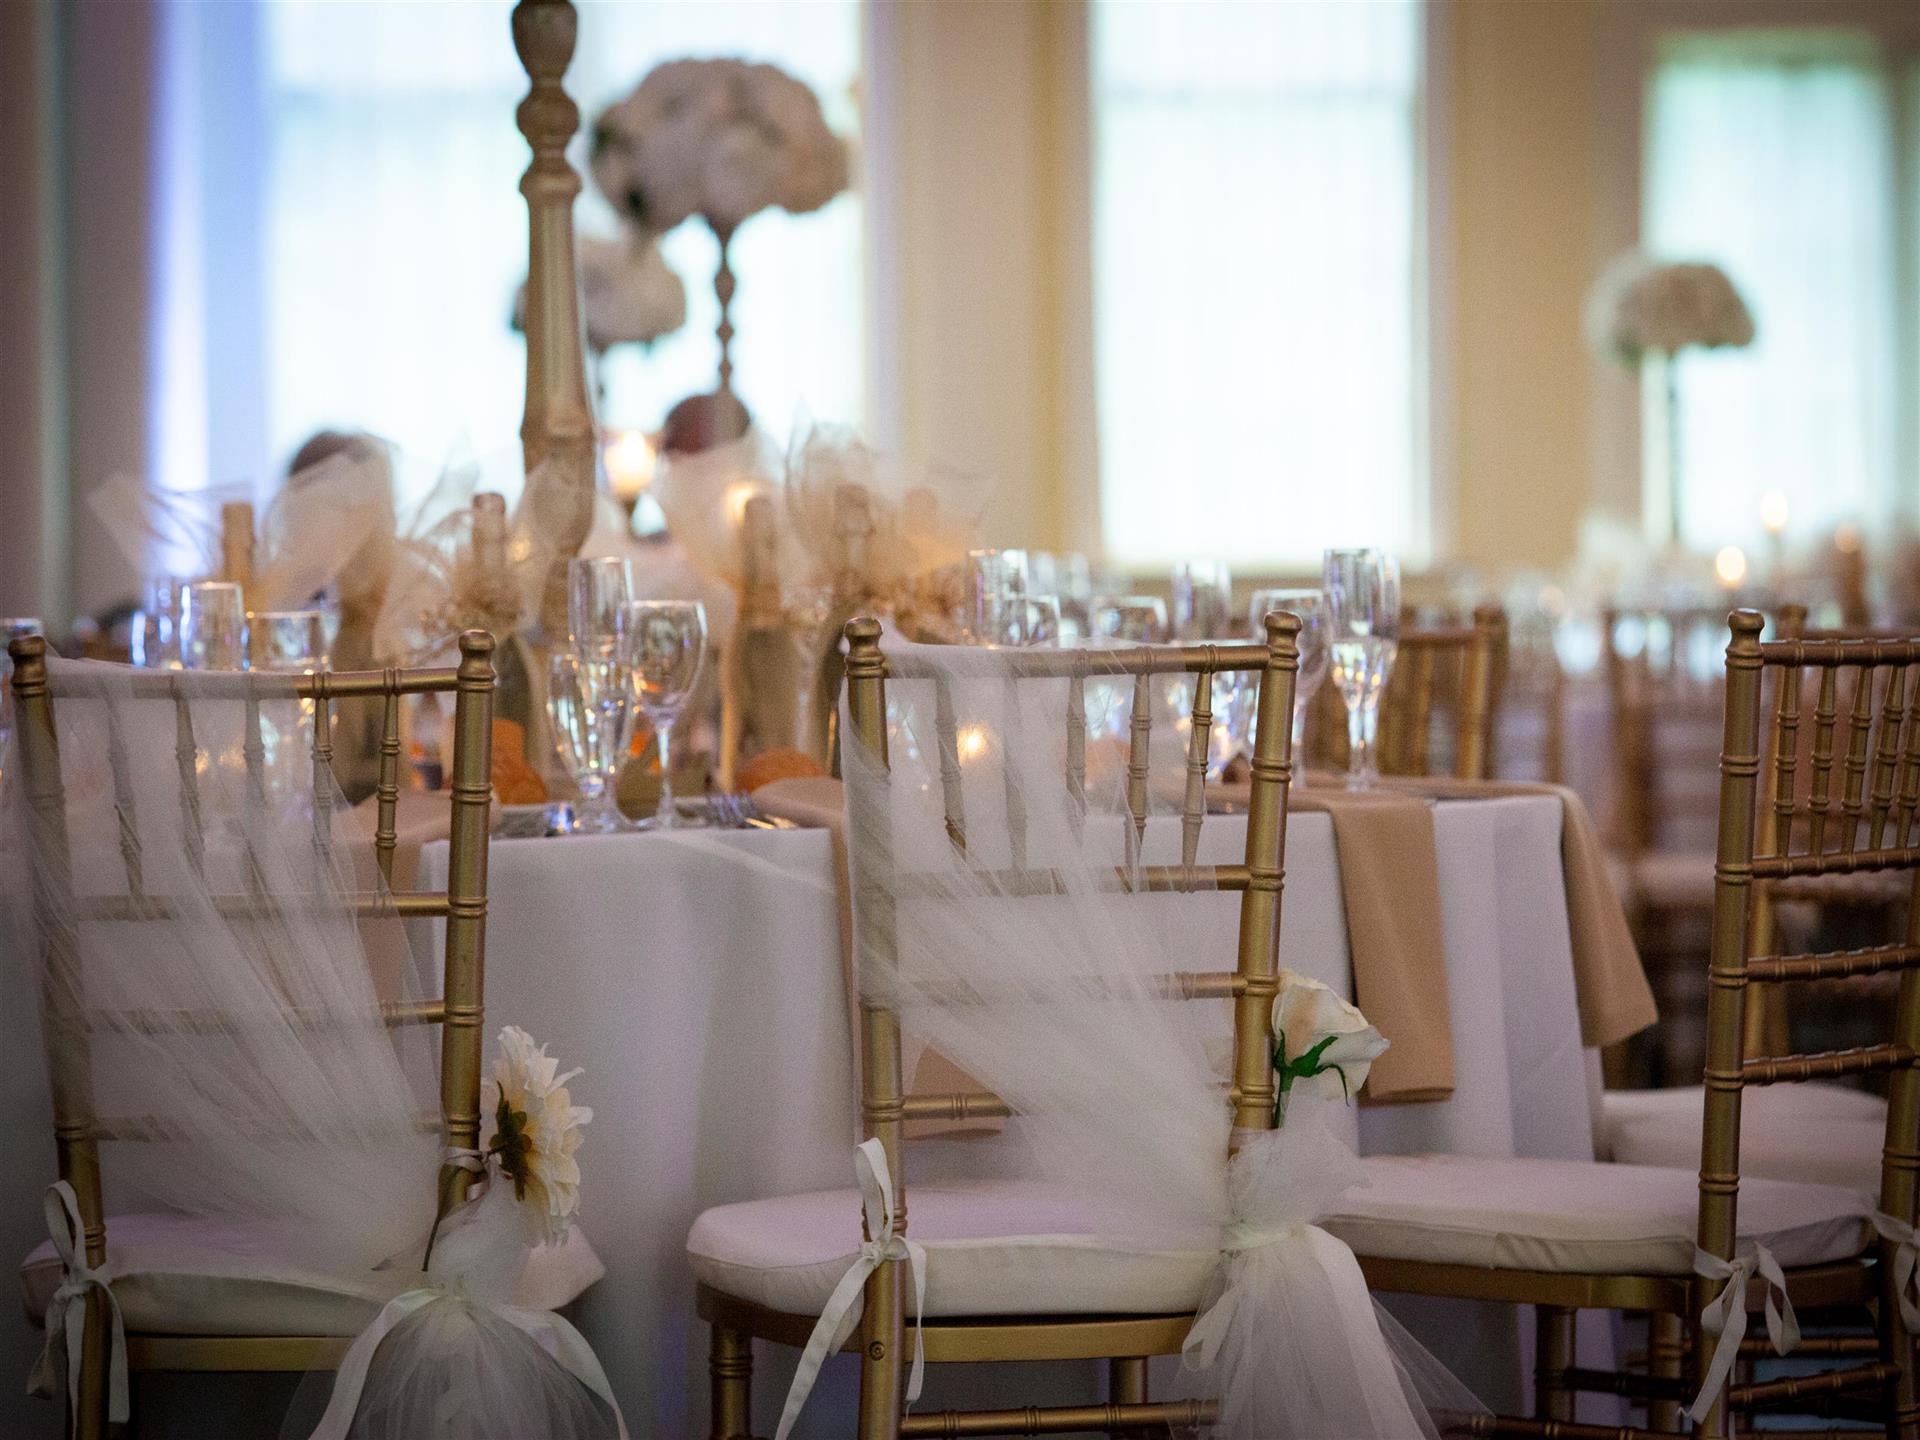 White-clothed banquet tables with tulle over banquet chairs